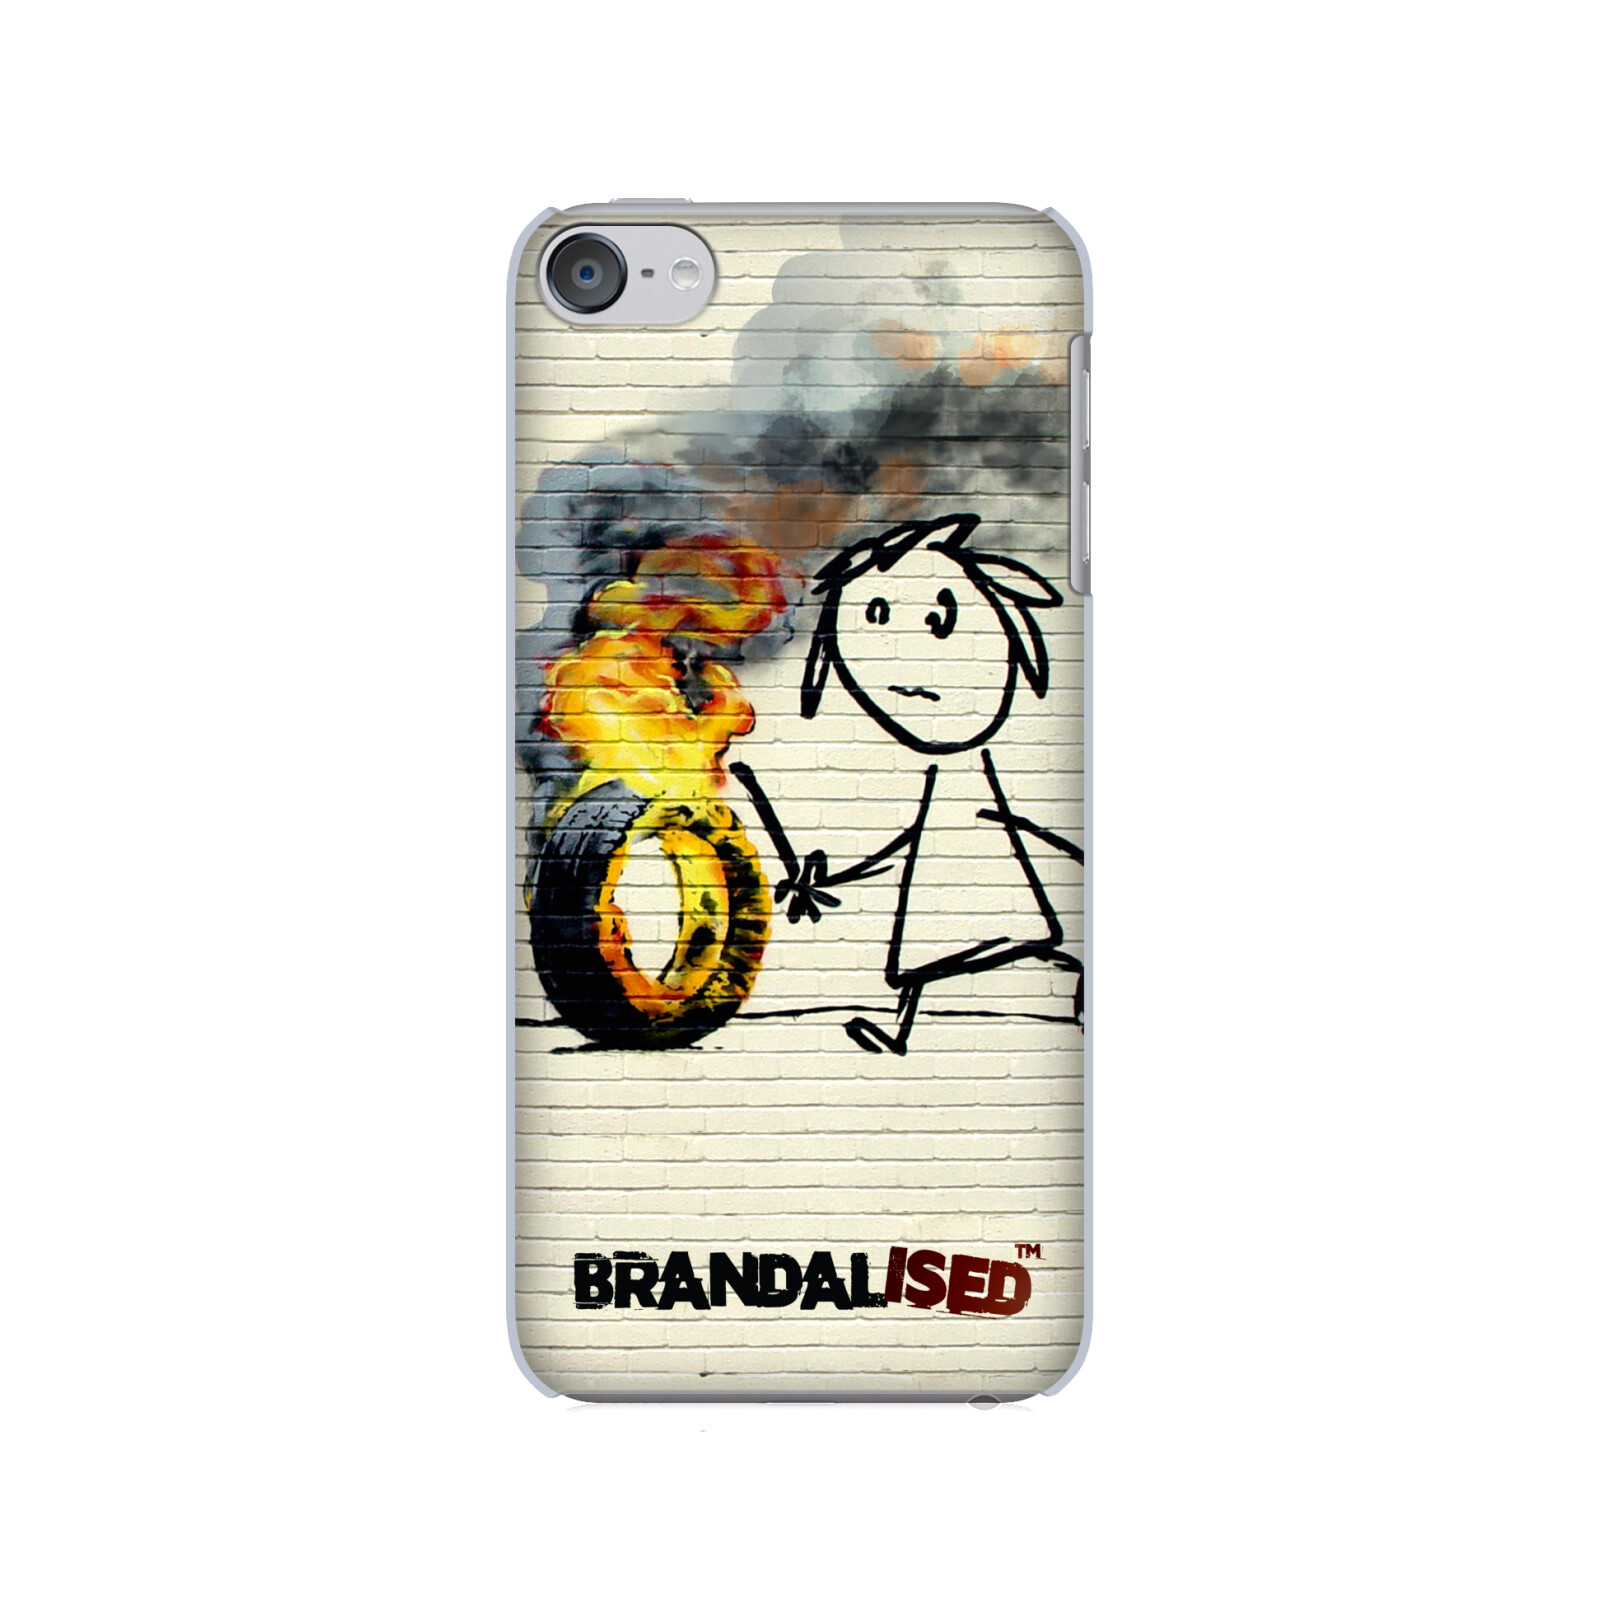 OFFICIAL BRANDALISED STREET ART HARD BACK CASE FOR APPLE iPOD TOUCH MP3